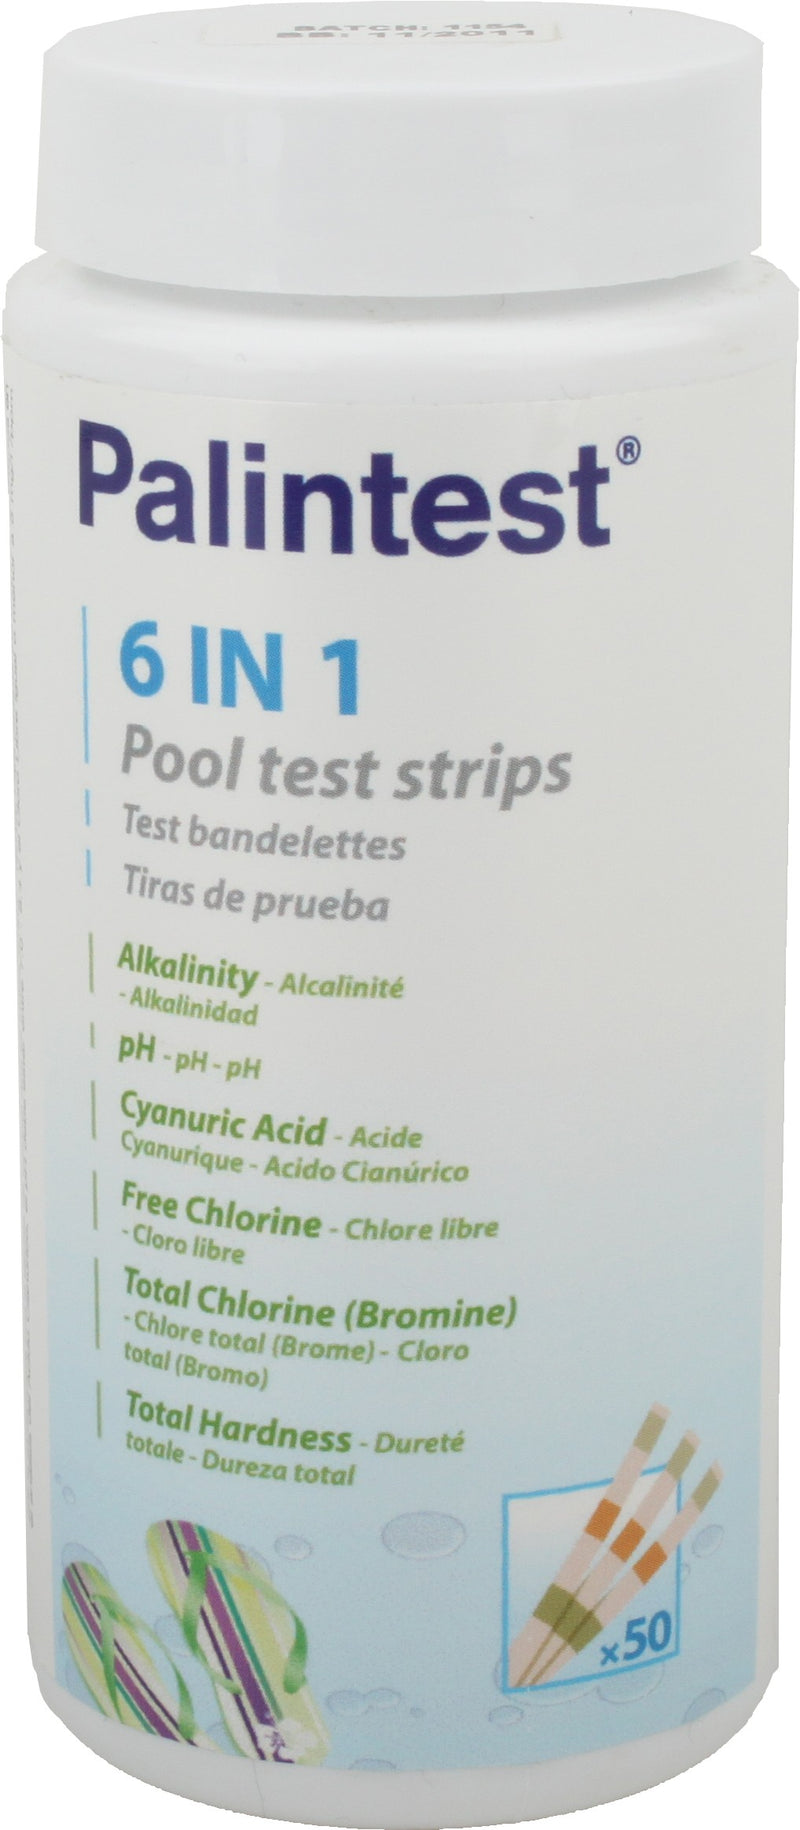 Palintest 6-in-1 teststrips - Monotherm Webshop